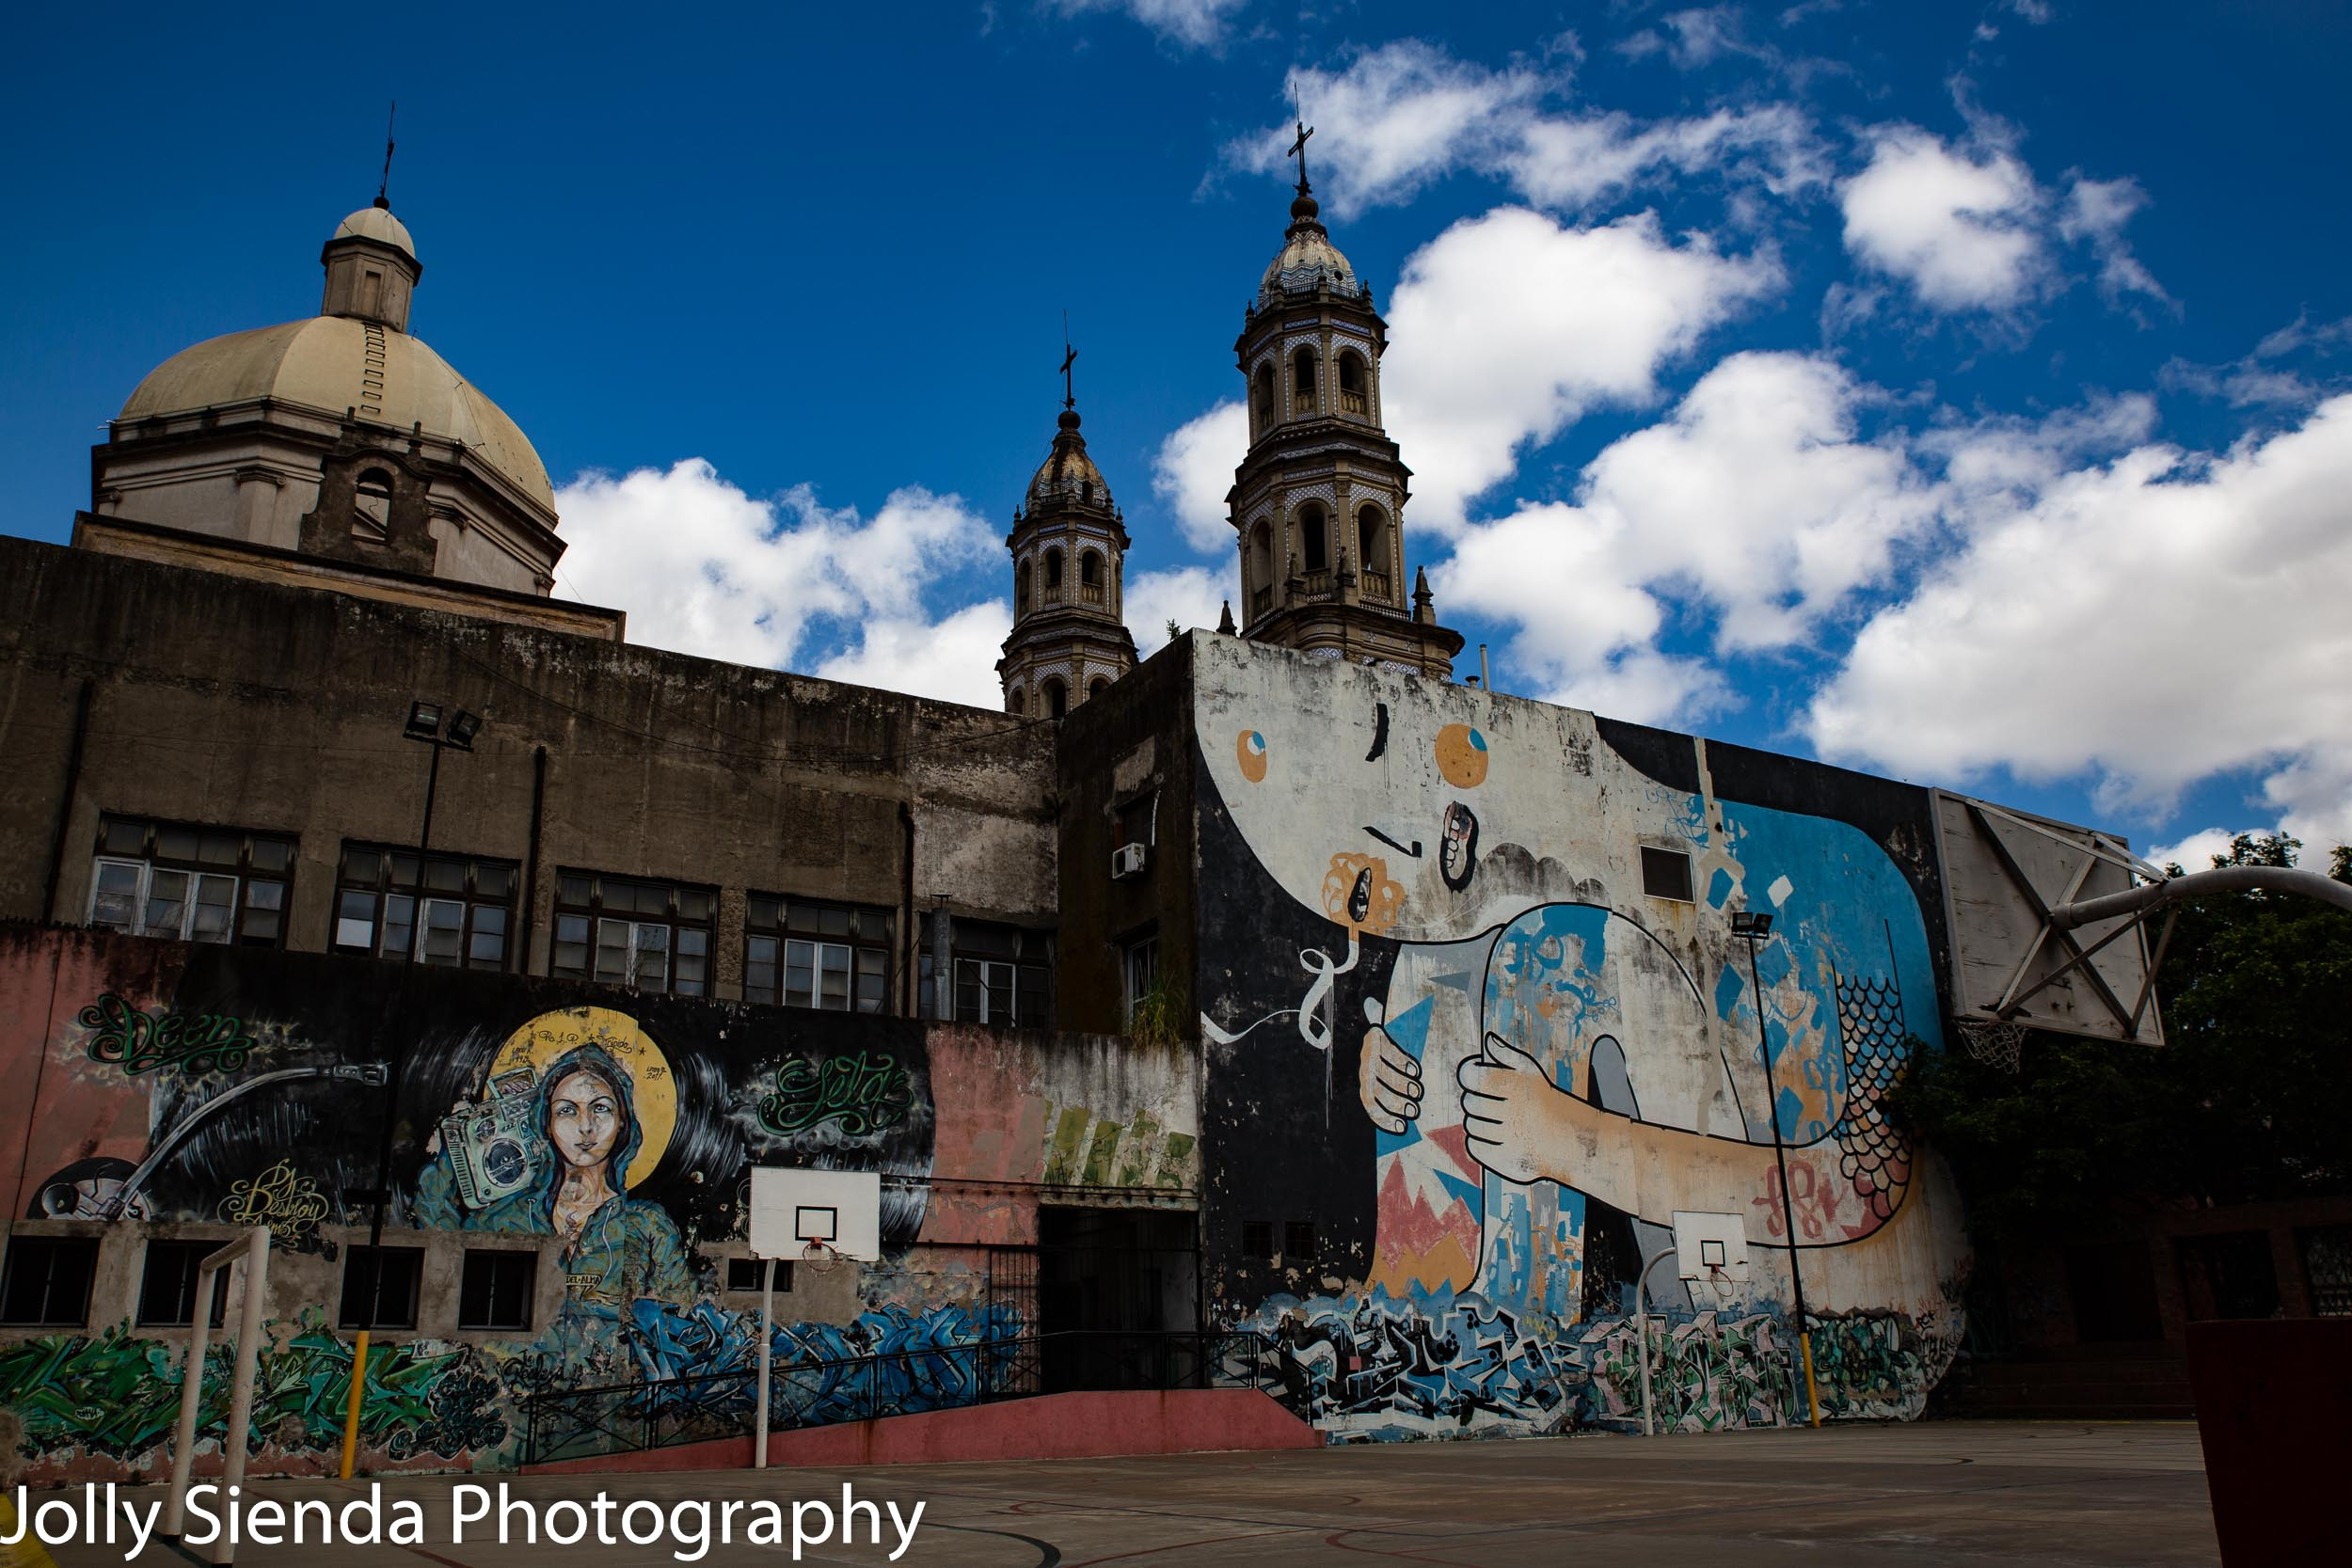 San Telmo, Argentina architecture, graffiti, and basketball courts and hoops